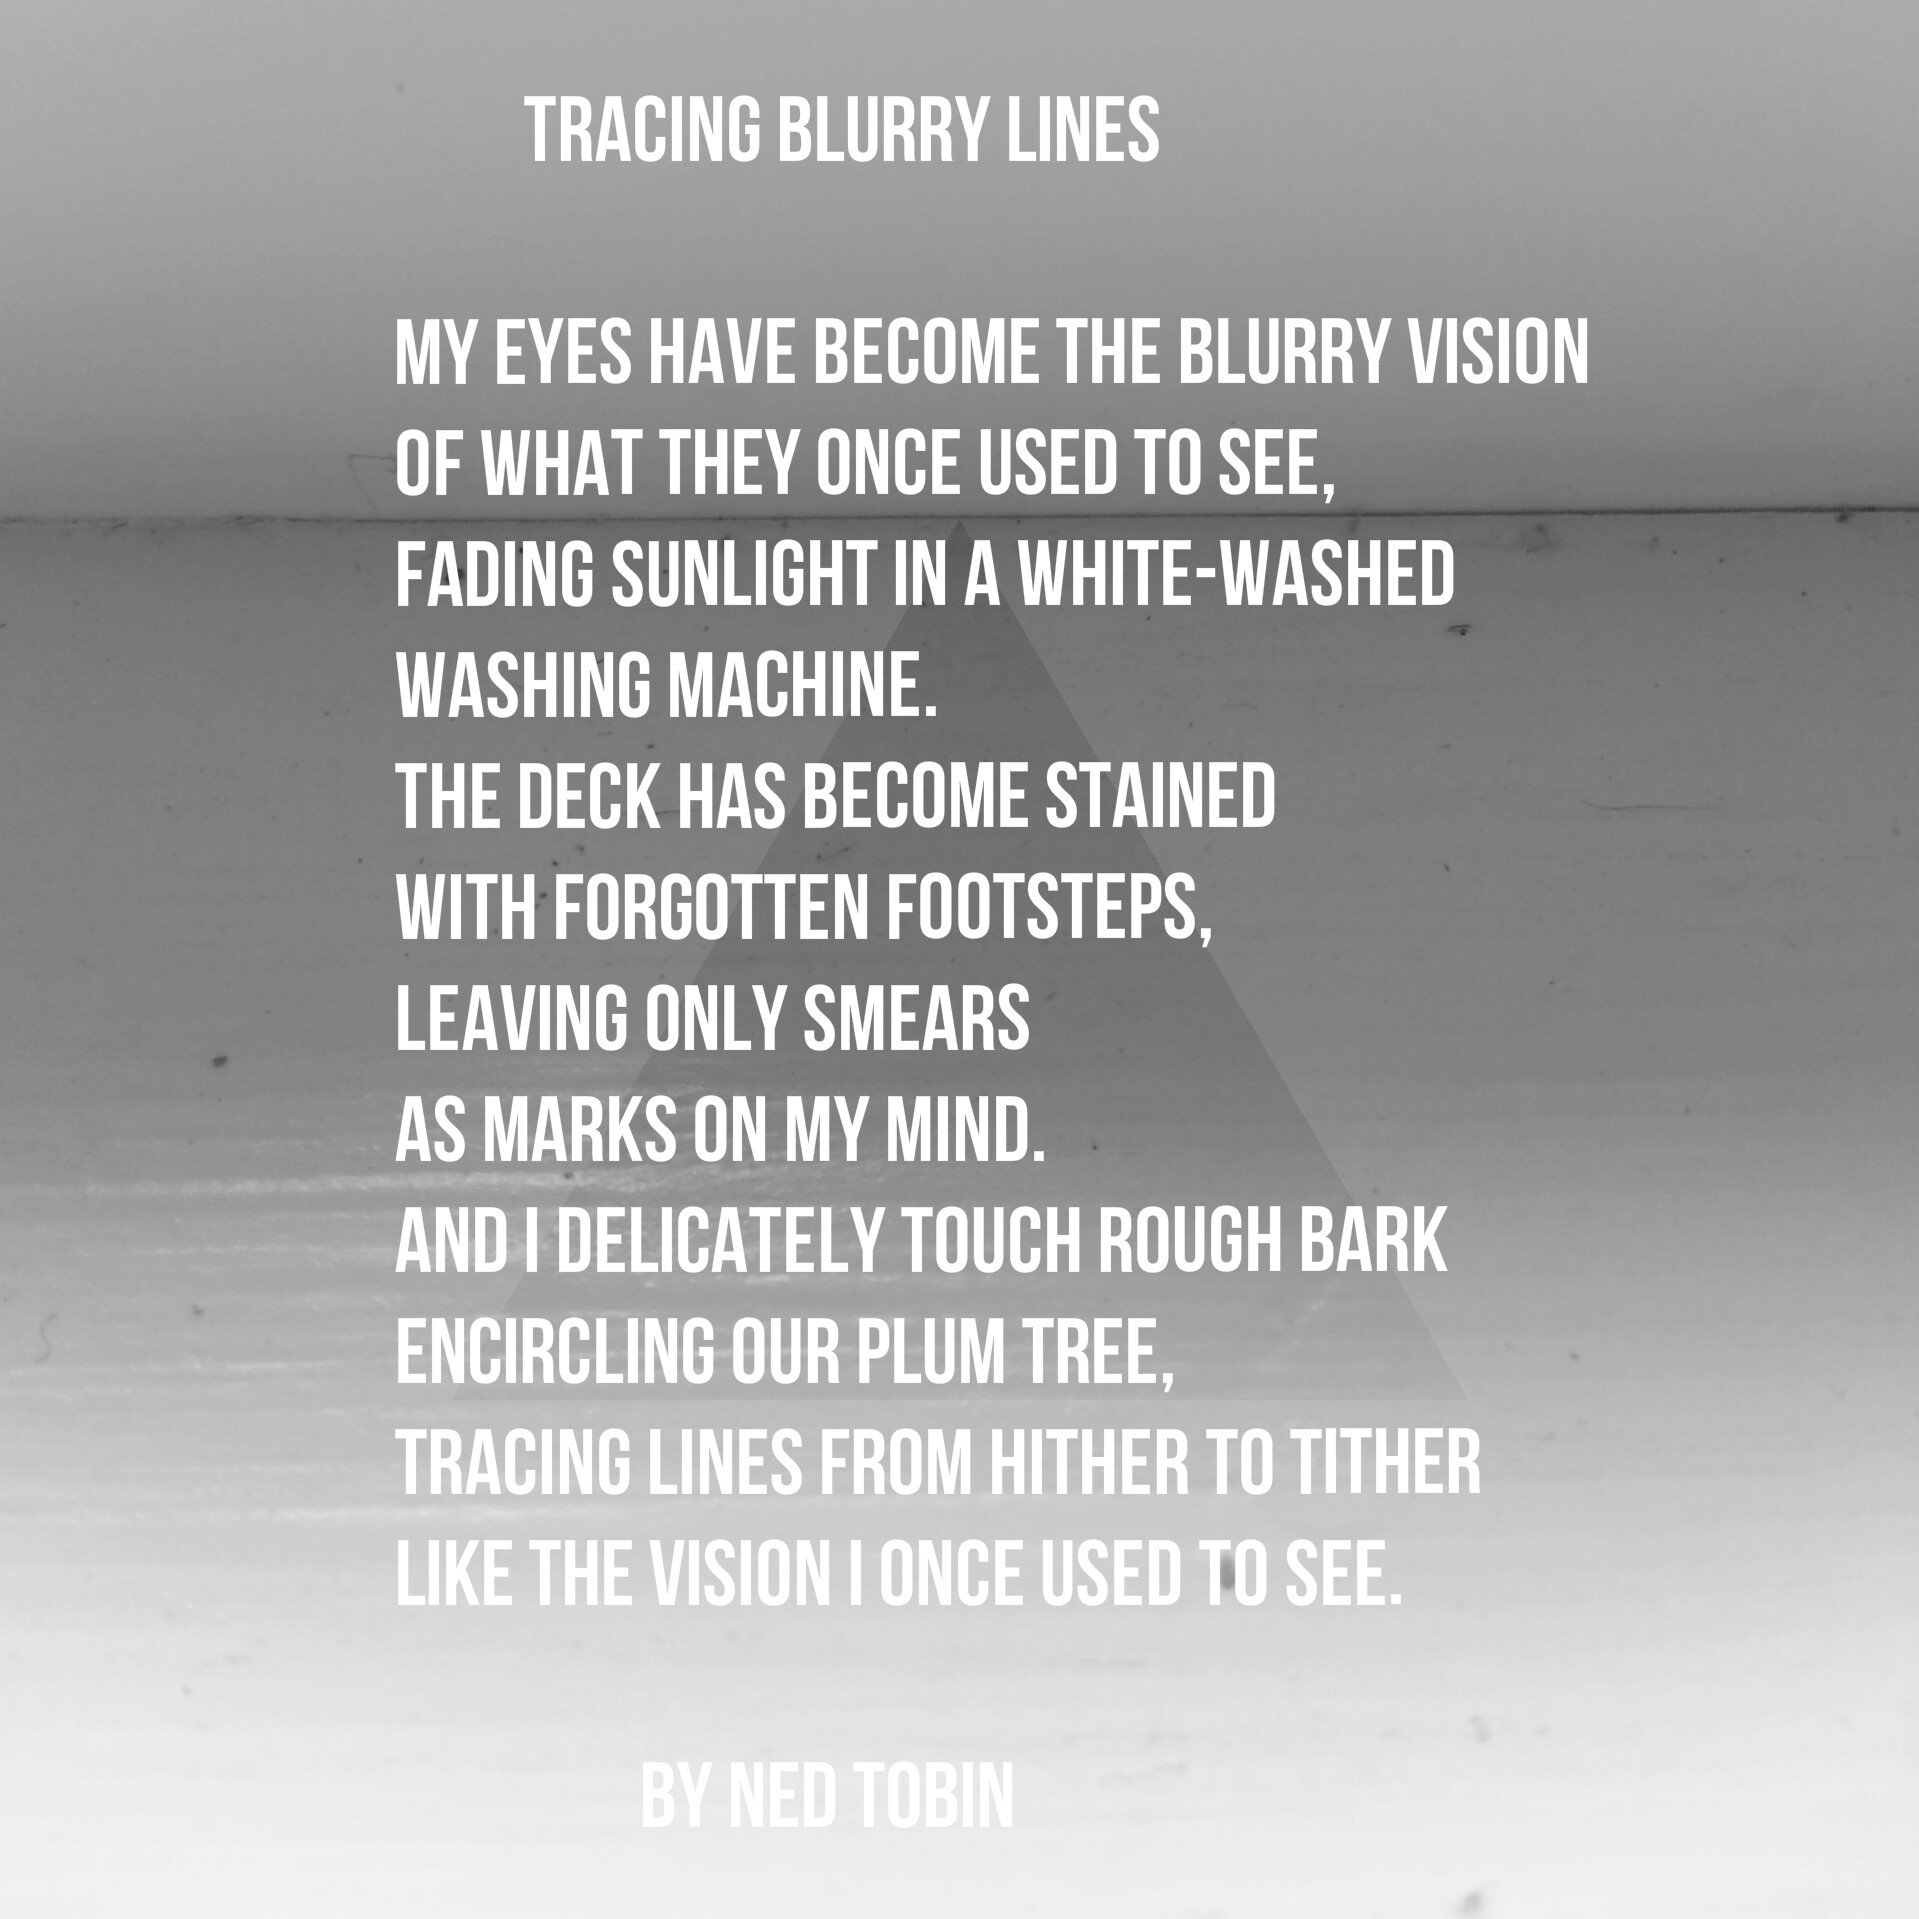 Tracing Blurry Lines by Ned Tobin